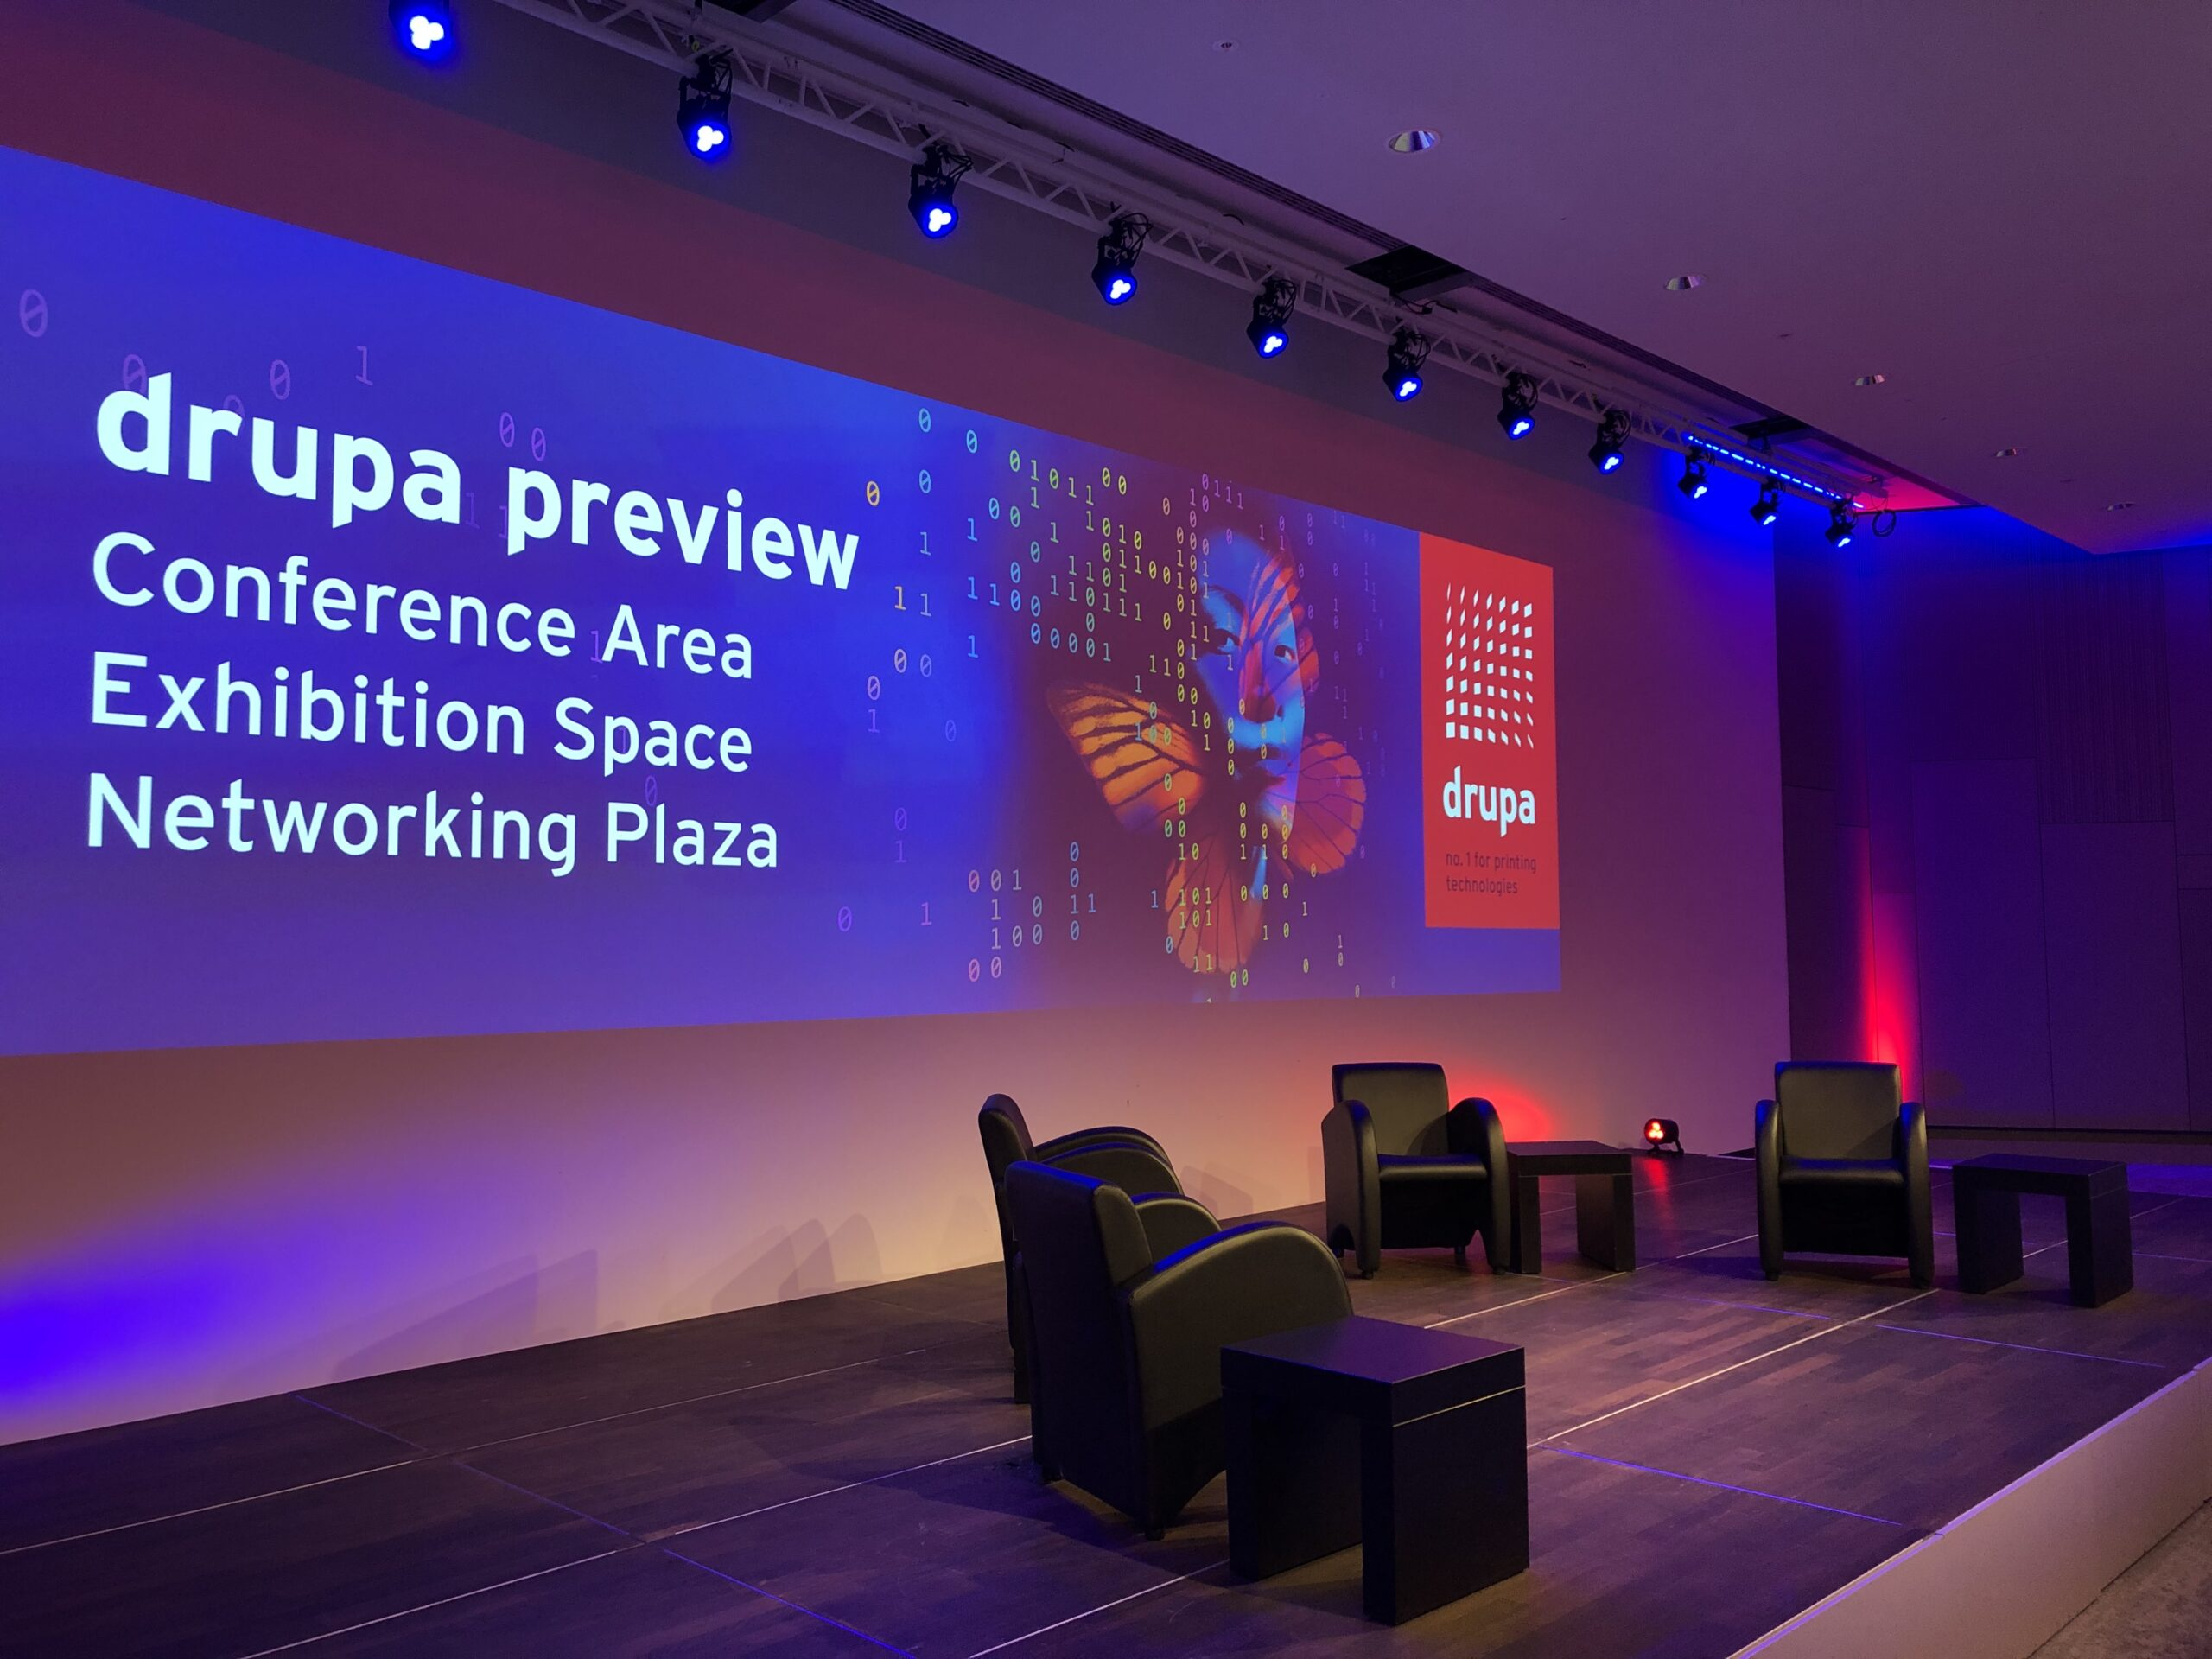 Die Kulisse der Panel Discussion des ersten drupa preview days im Oktober 2020